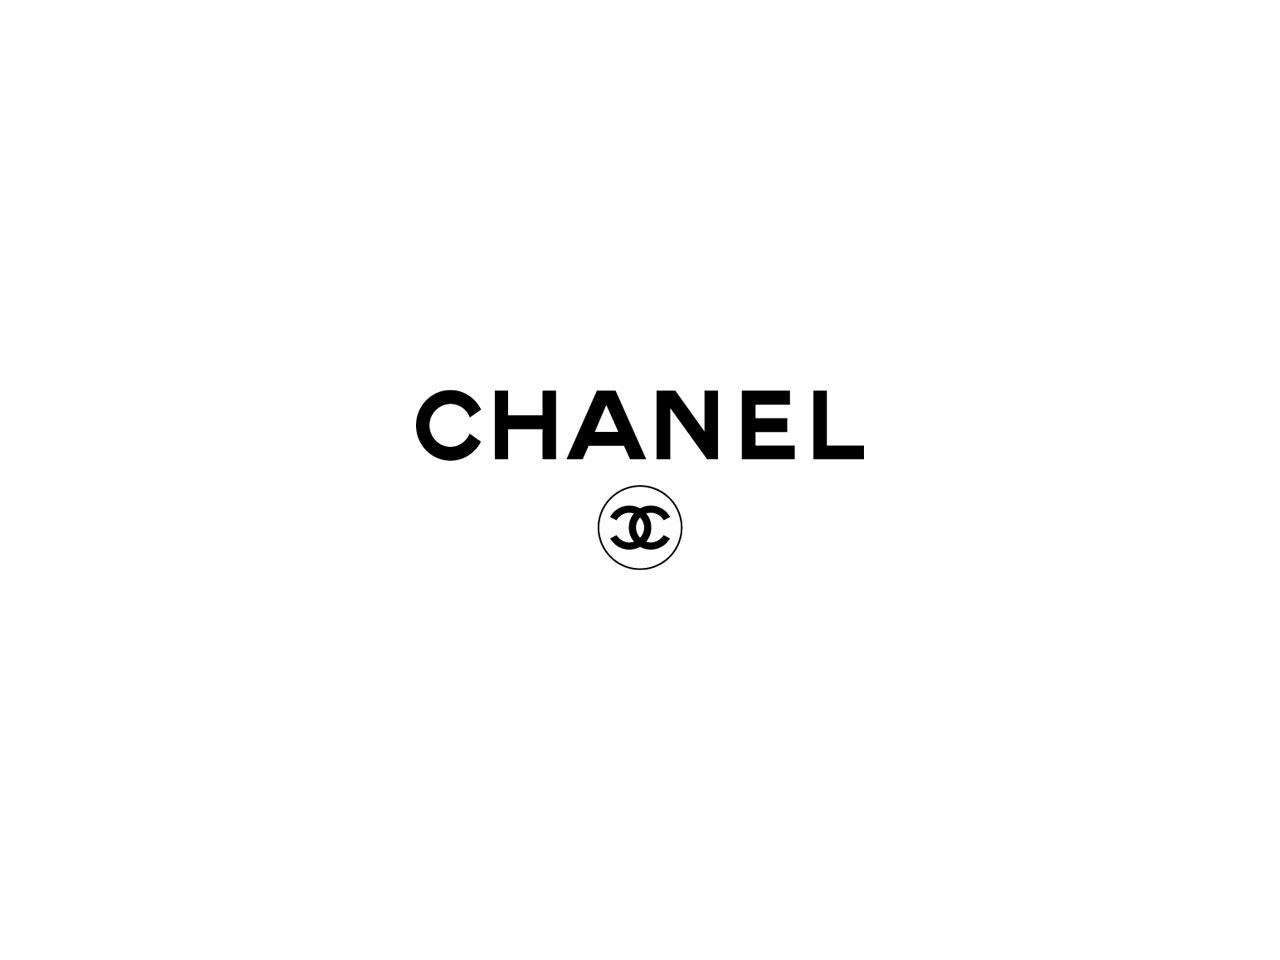 chanel KING 1280x960